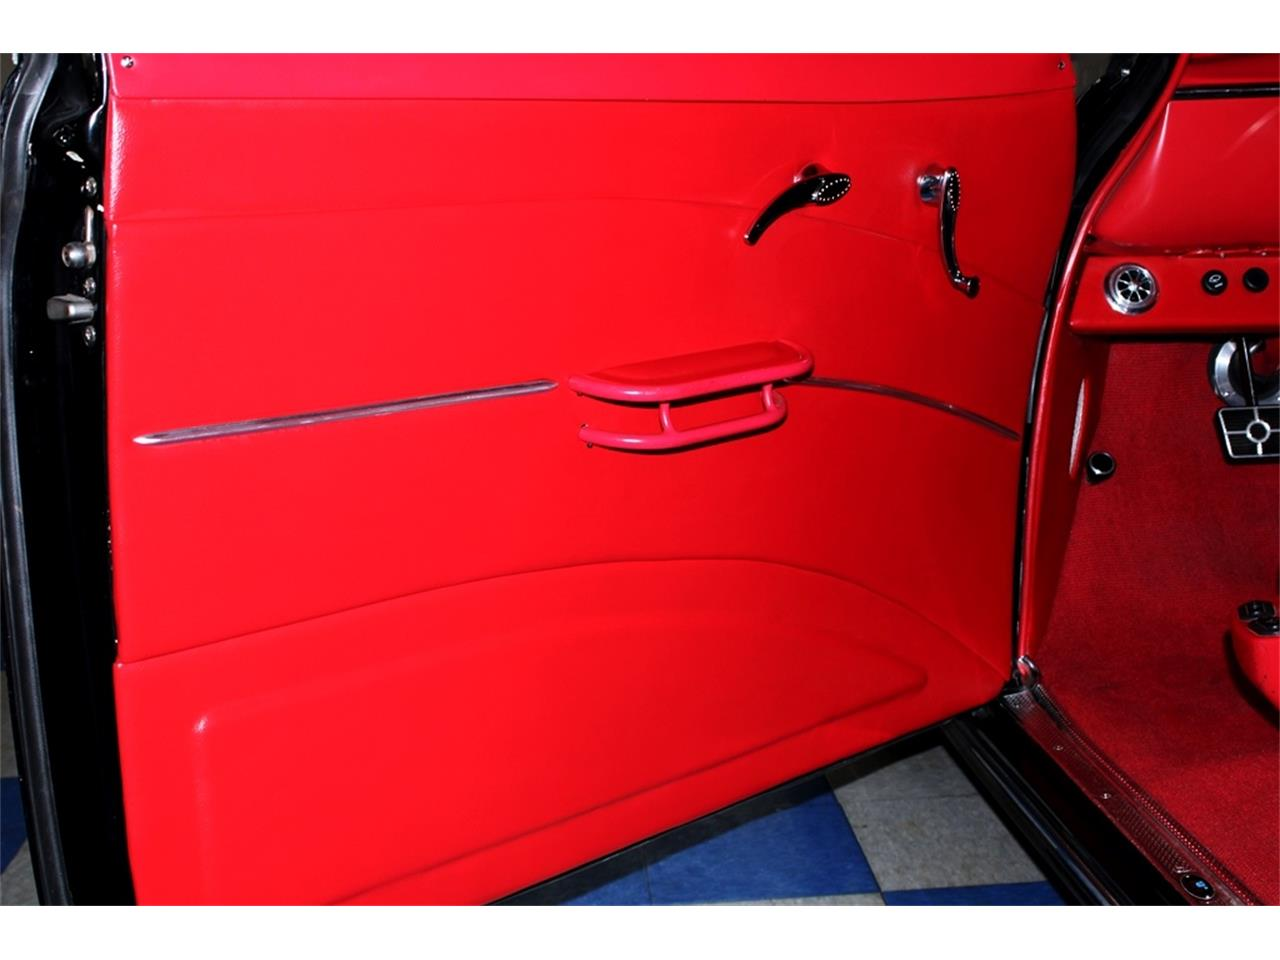 Large Picture of '50 Chevrolet Styleline Deluxe - $79,900.00 Offered by A&E Classic Cars - QQK1